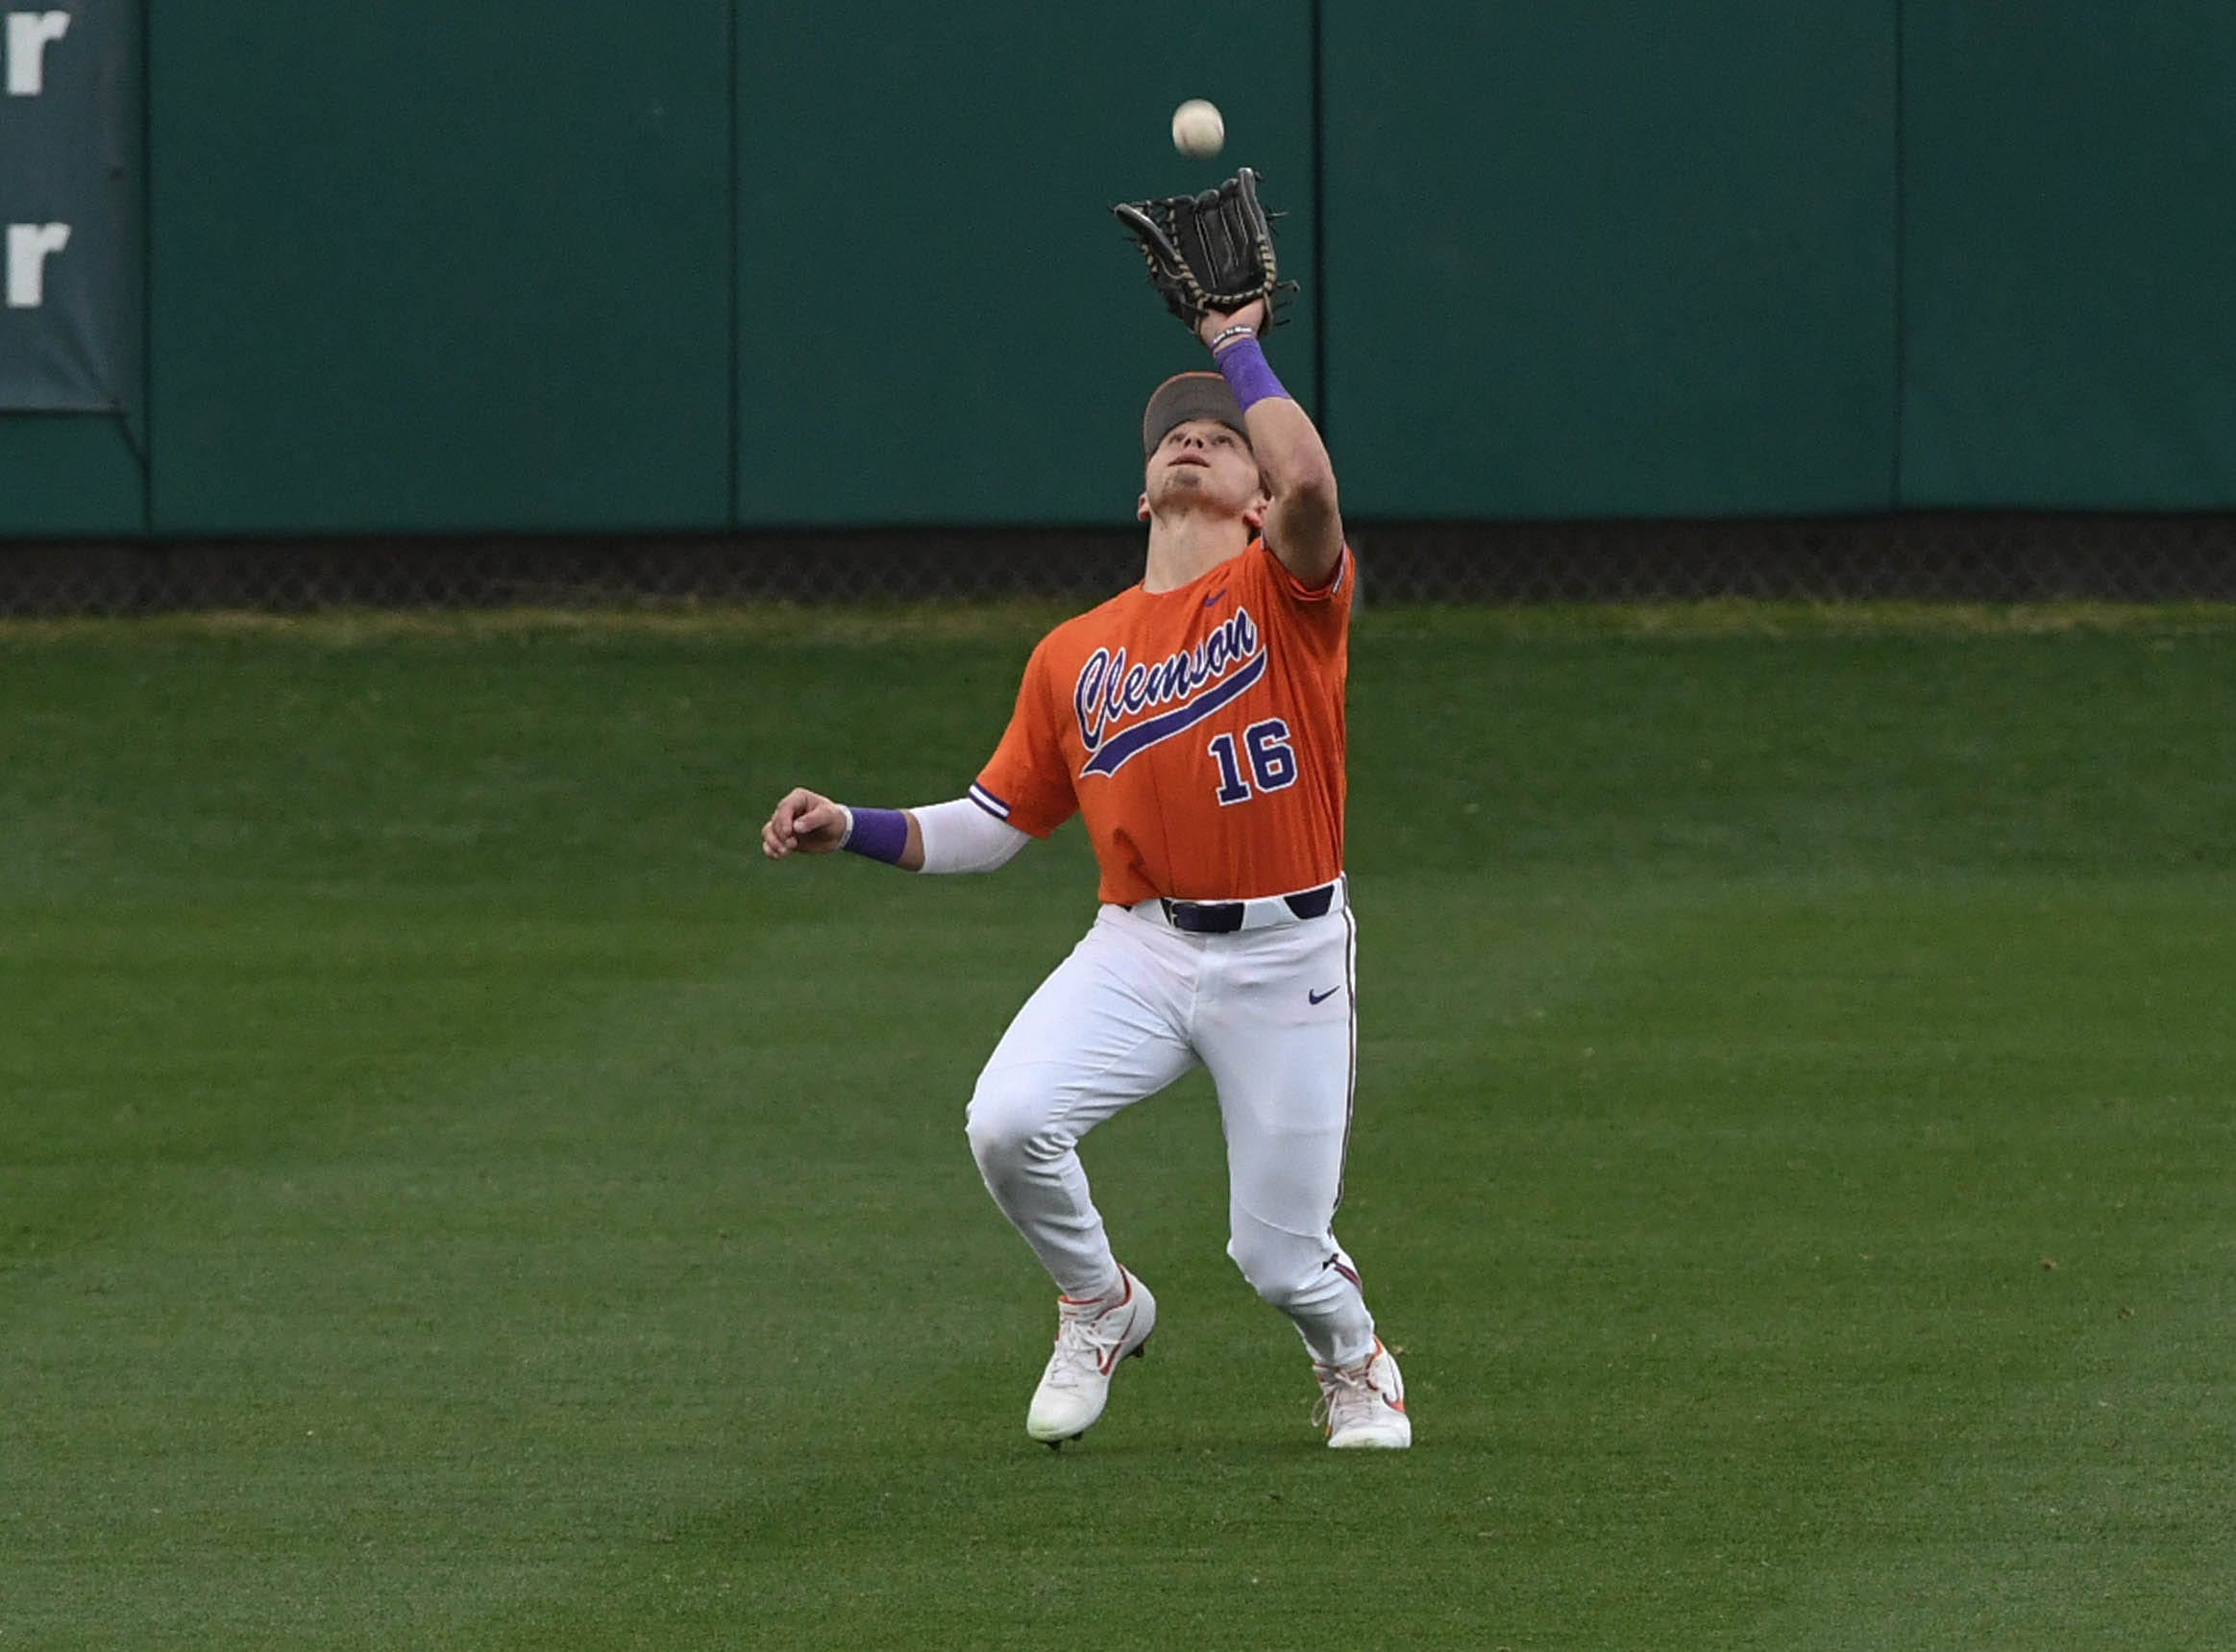 Clemson sophomore Bo Majkowski(16) catches a fly ball against South Alabama during the top of the sixth inning at Doug Kingsmore Stadium in Clemson Friday, February 15, 2019.